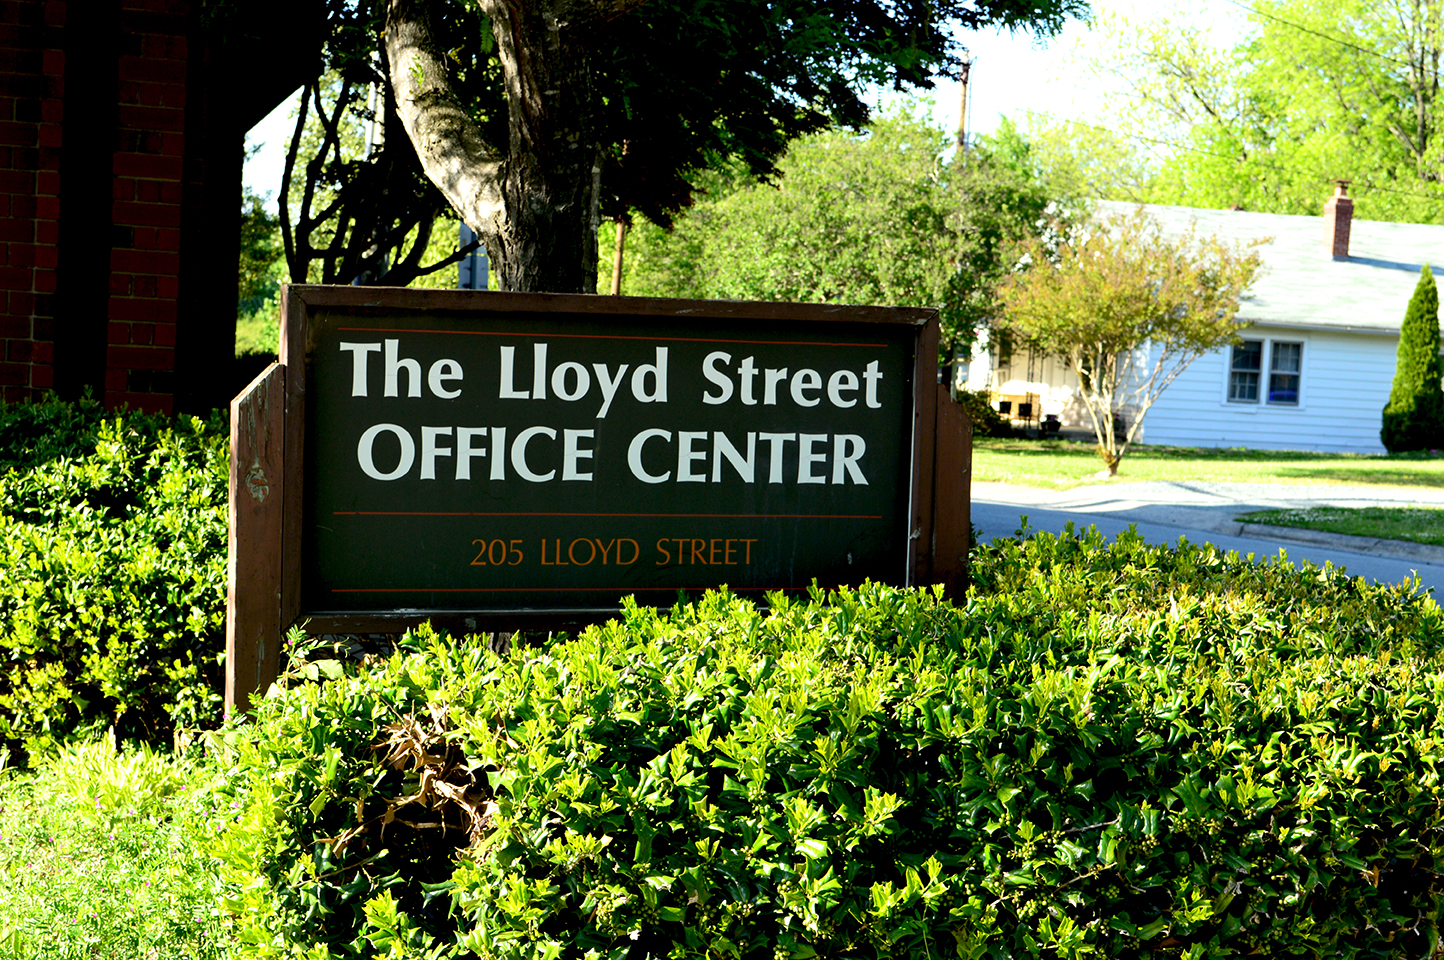 The Lloyd St. Office Center